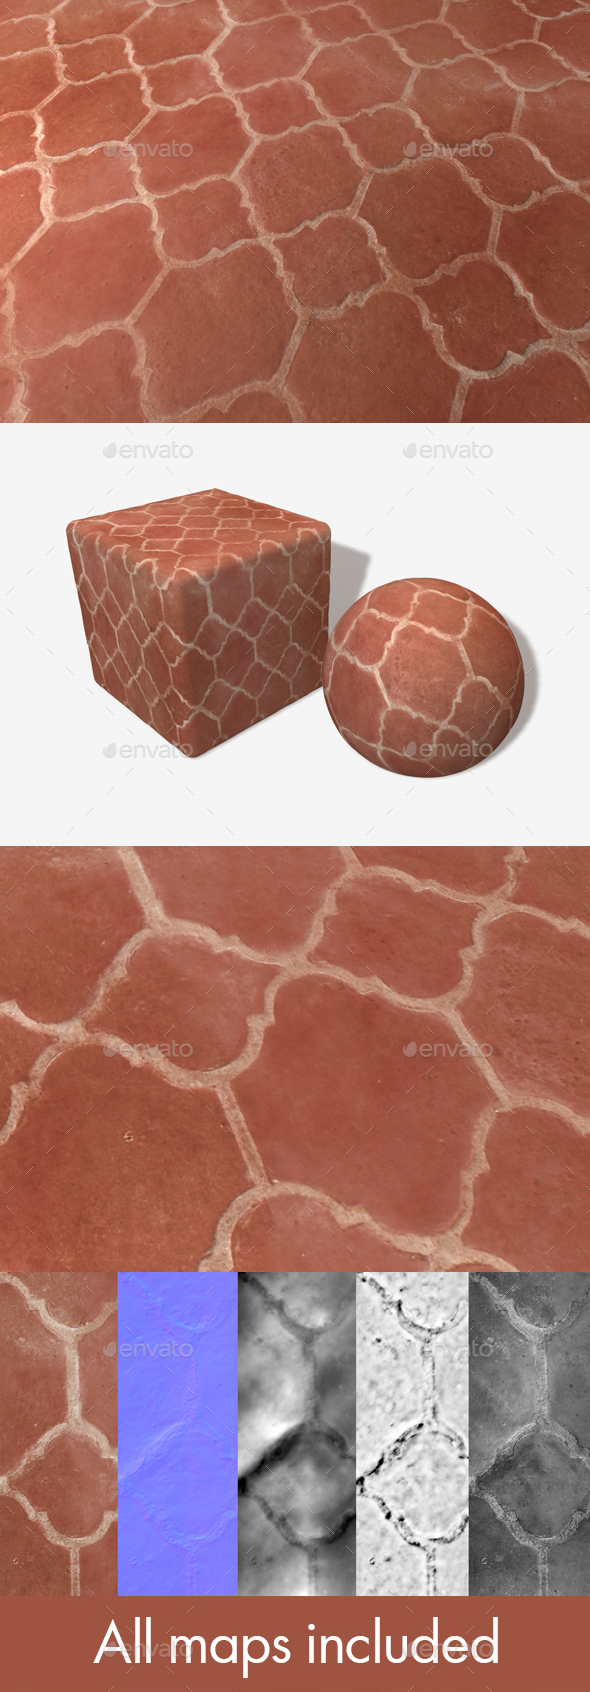 Red Terracotta Floor Tiles Seamless Texture - 3DOcean Item for Sale